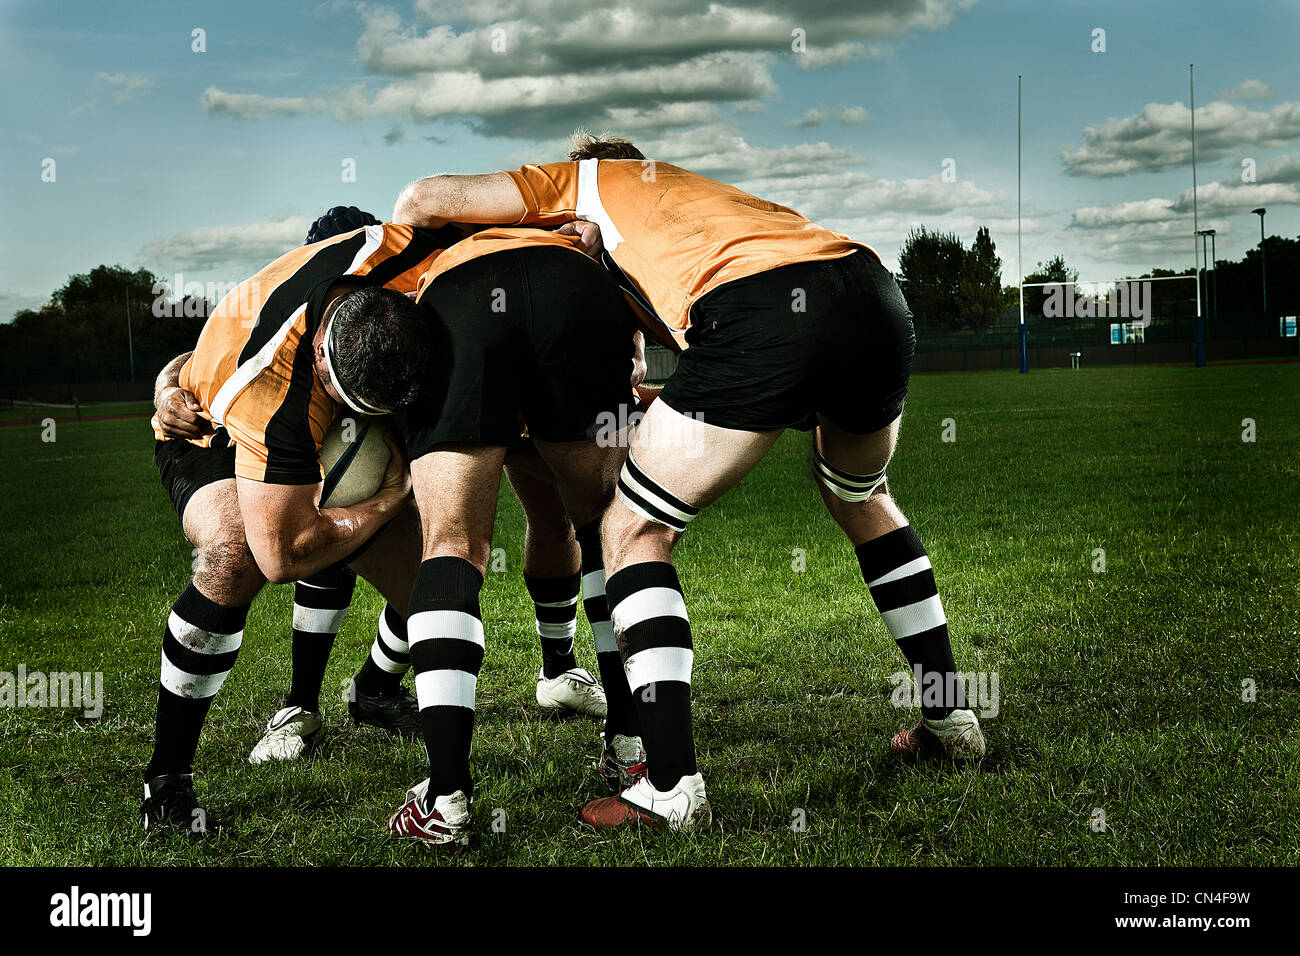 Joueurs de rugby de pitch sur scrum Photo Stock